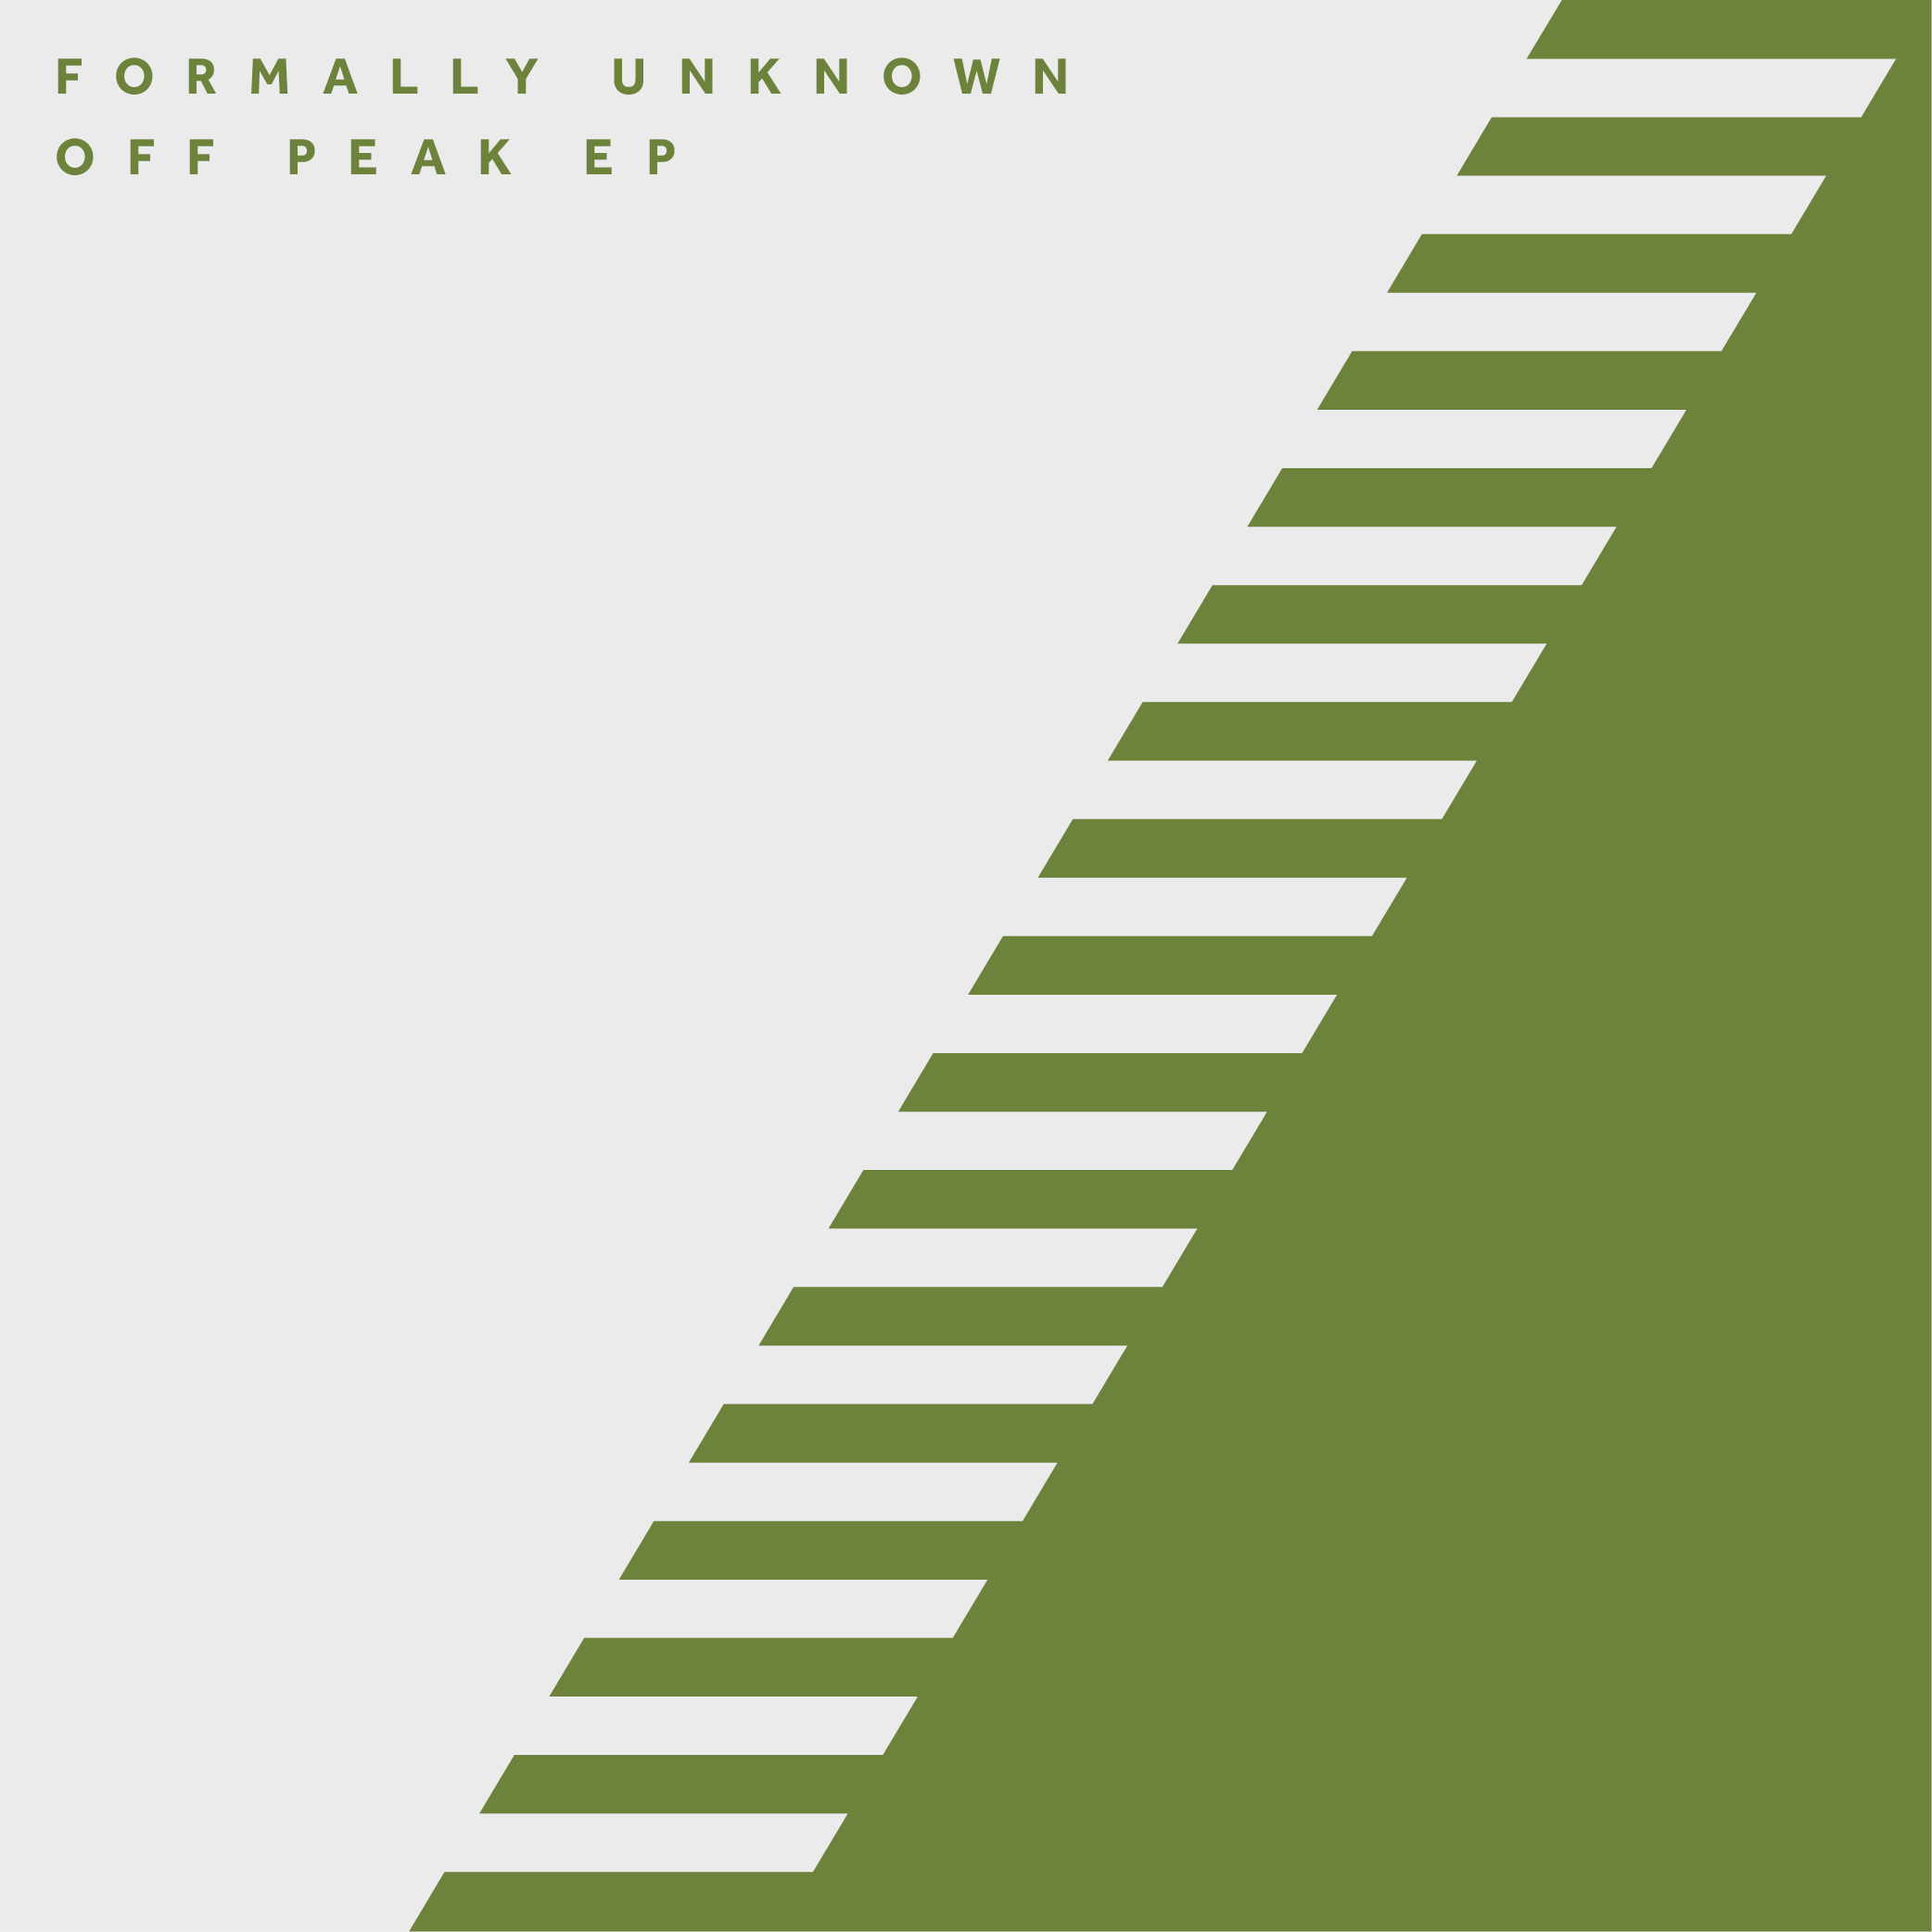 FORMALLY UNKNOWN – OFF PEAK EP